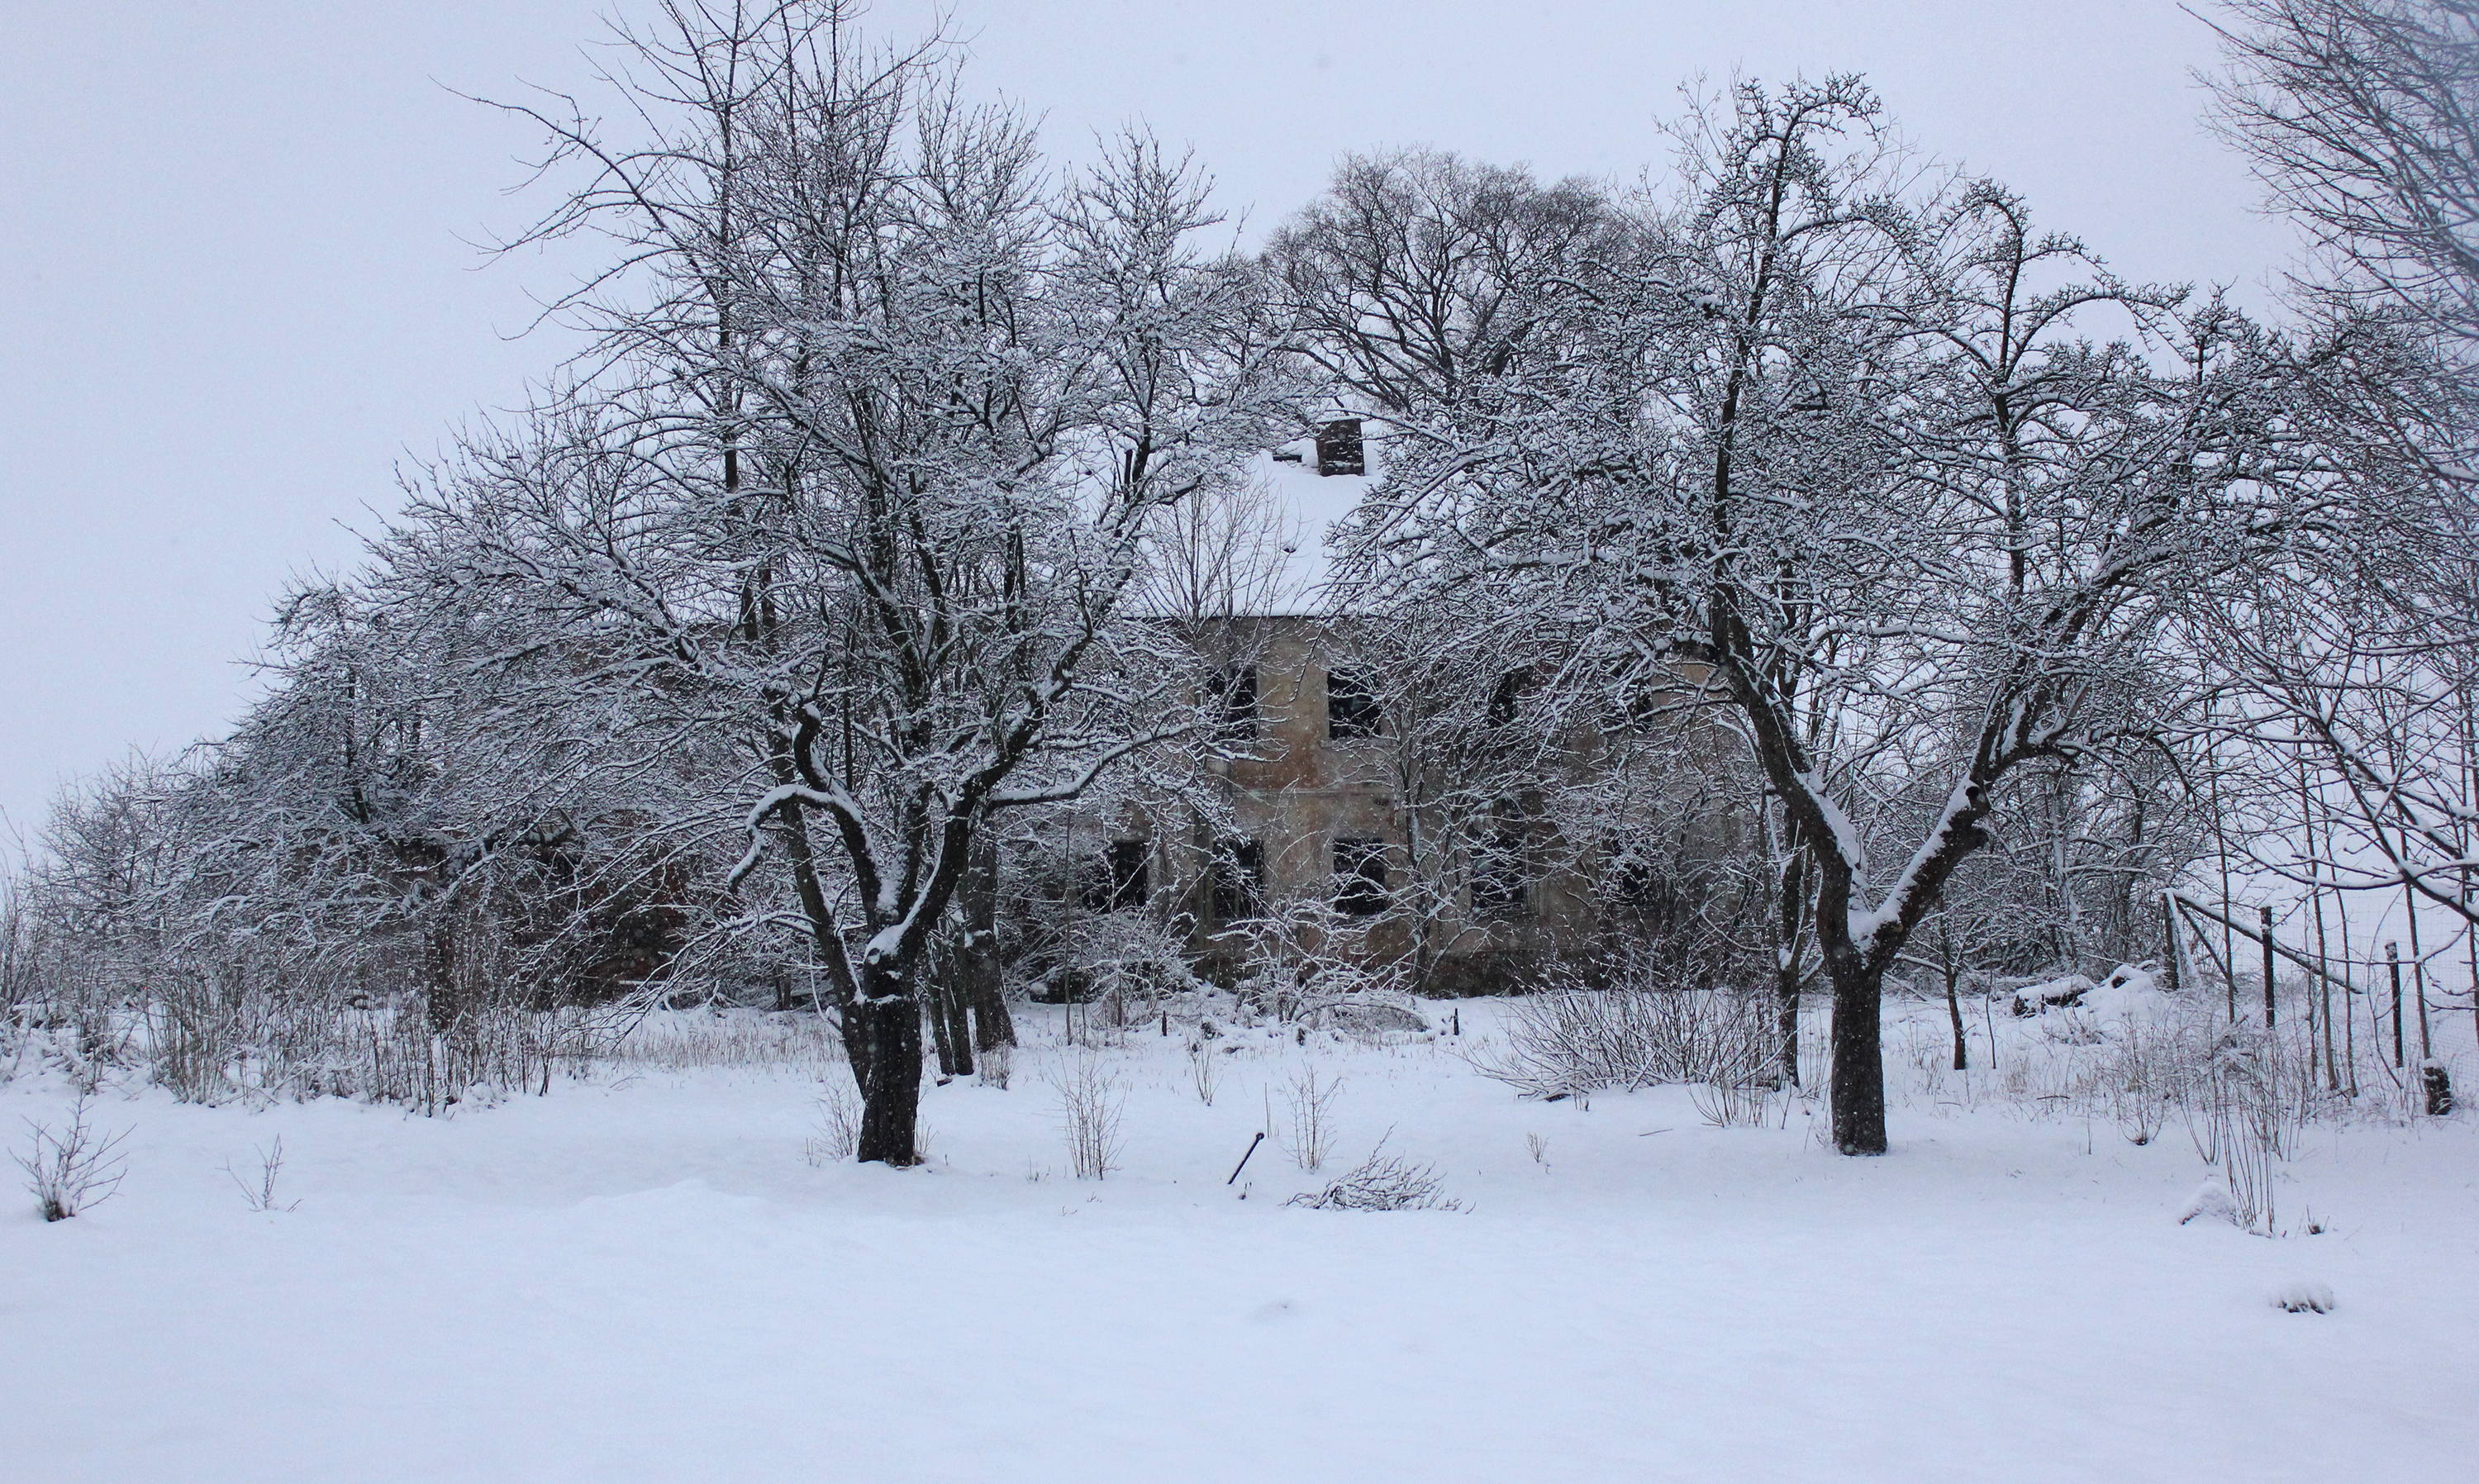 House No. 51 under snow